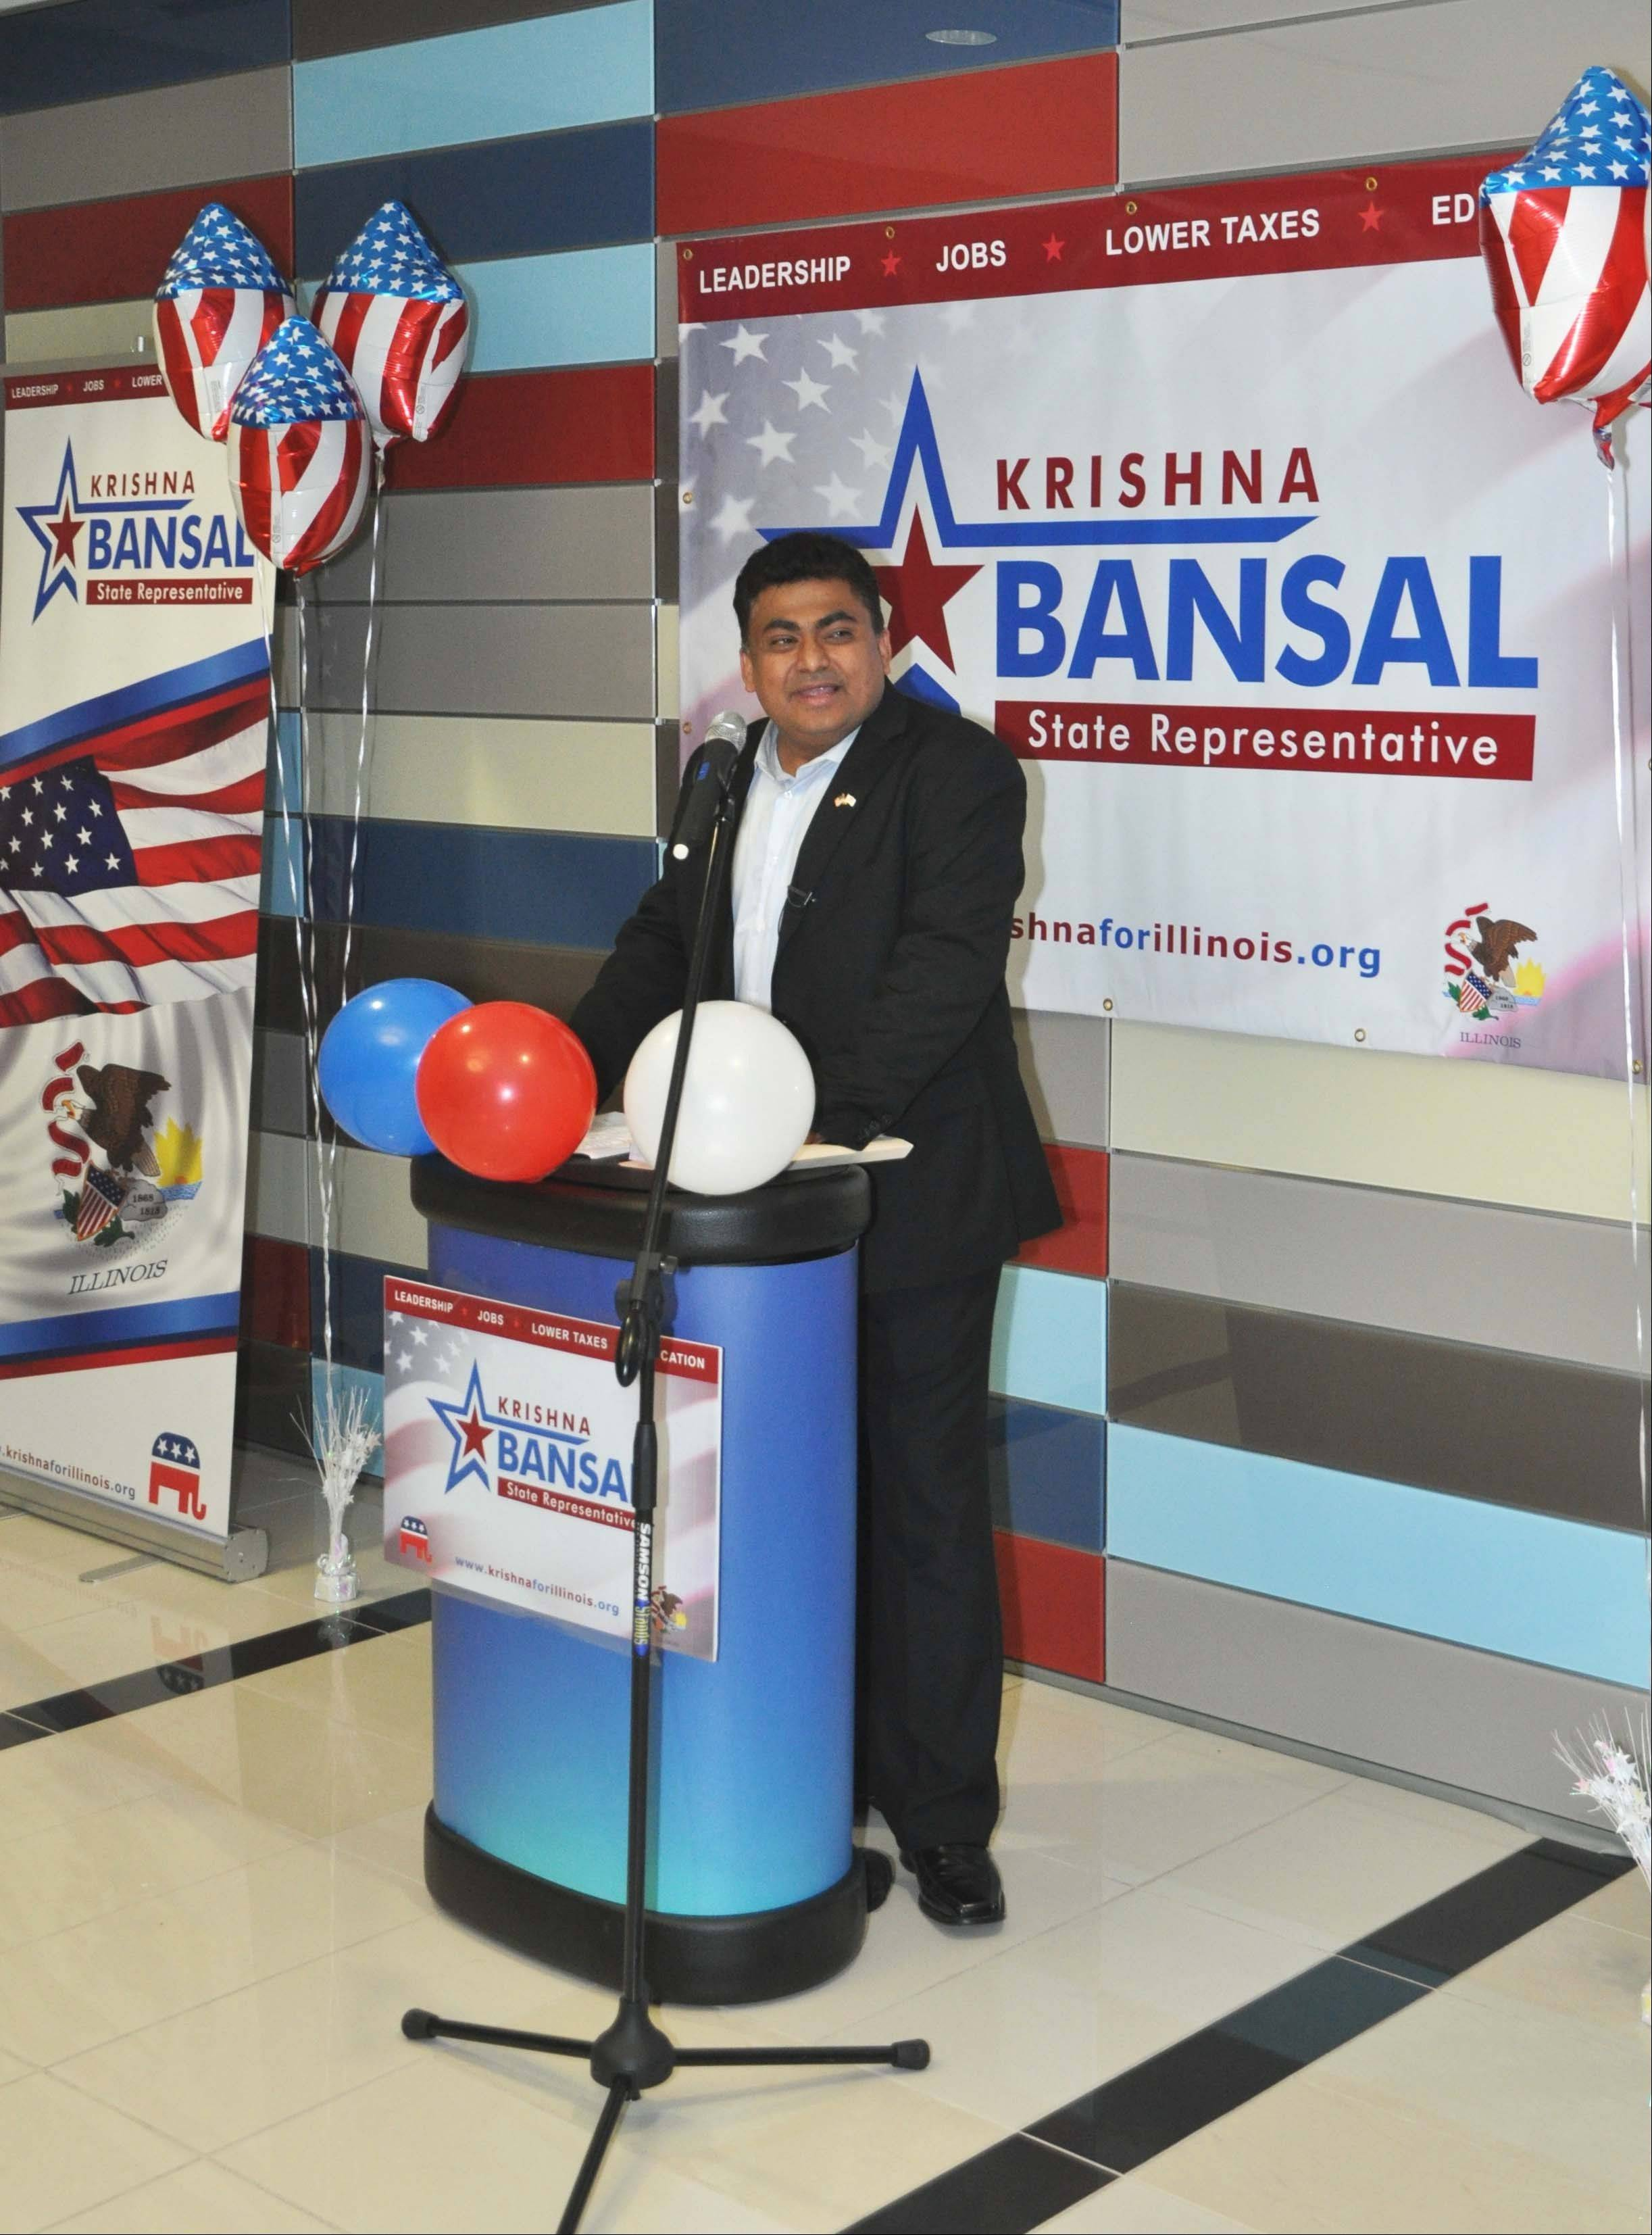 Naperville businessman Krishna Bansal, 43, announced Saturday he is running as a Republican for the 84th District state House seat.